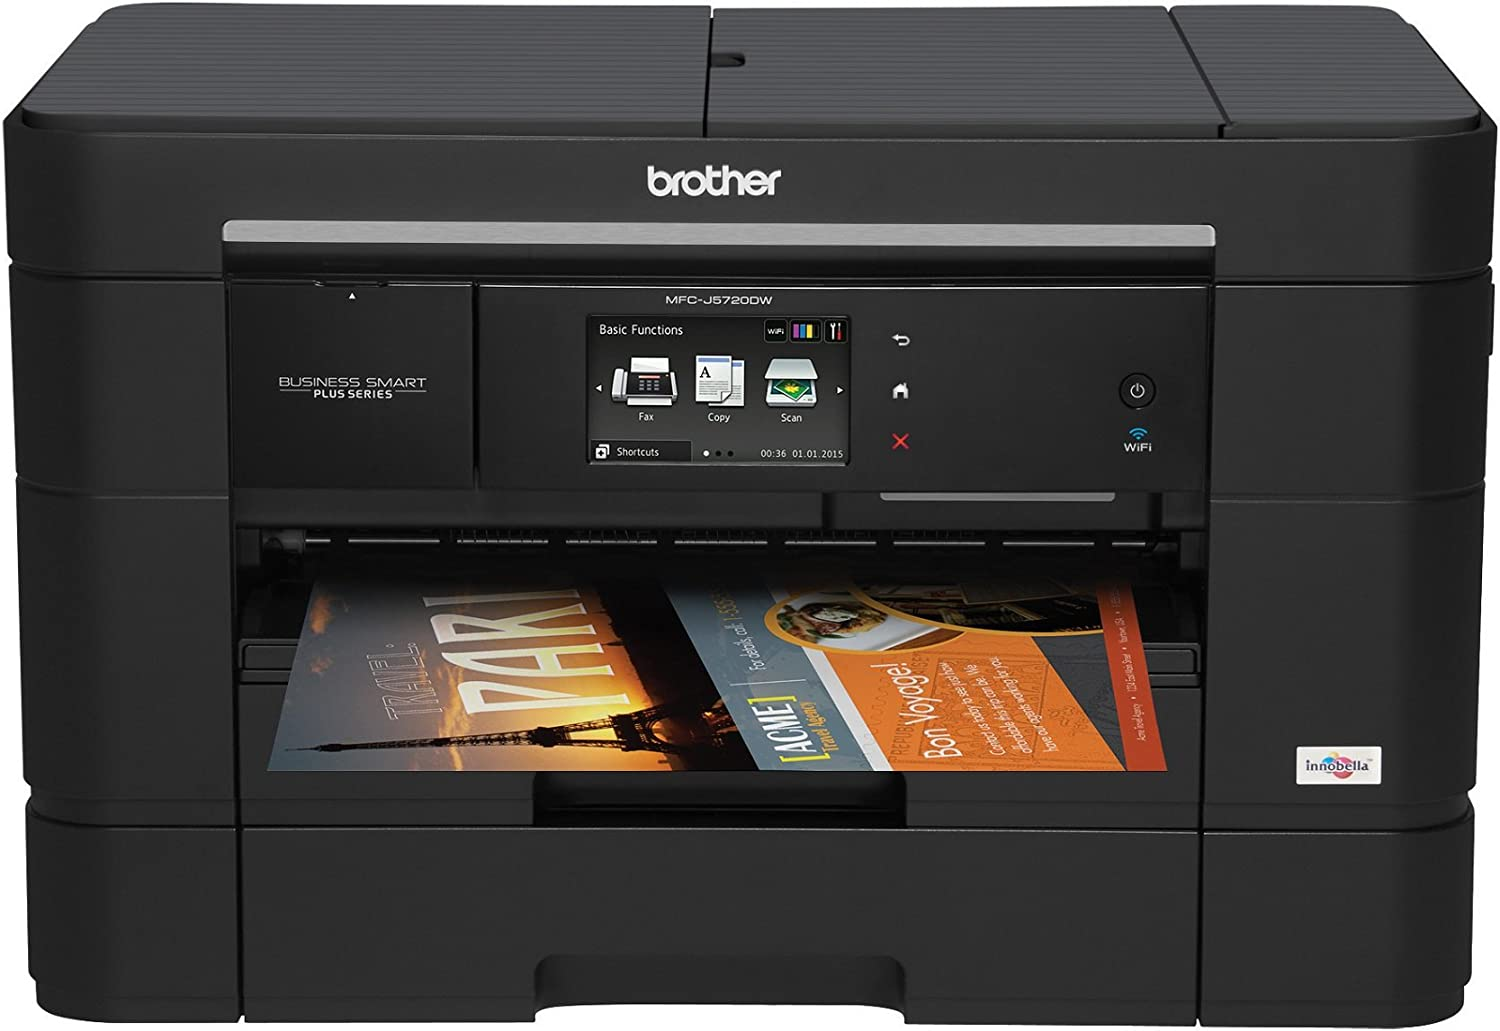 Brother Business Smart MFCJ5720DW All-in-One Color Inkjet Printer with Fax, Amazon Dash Replenishment Ready